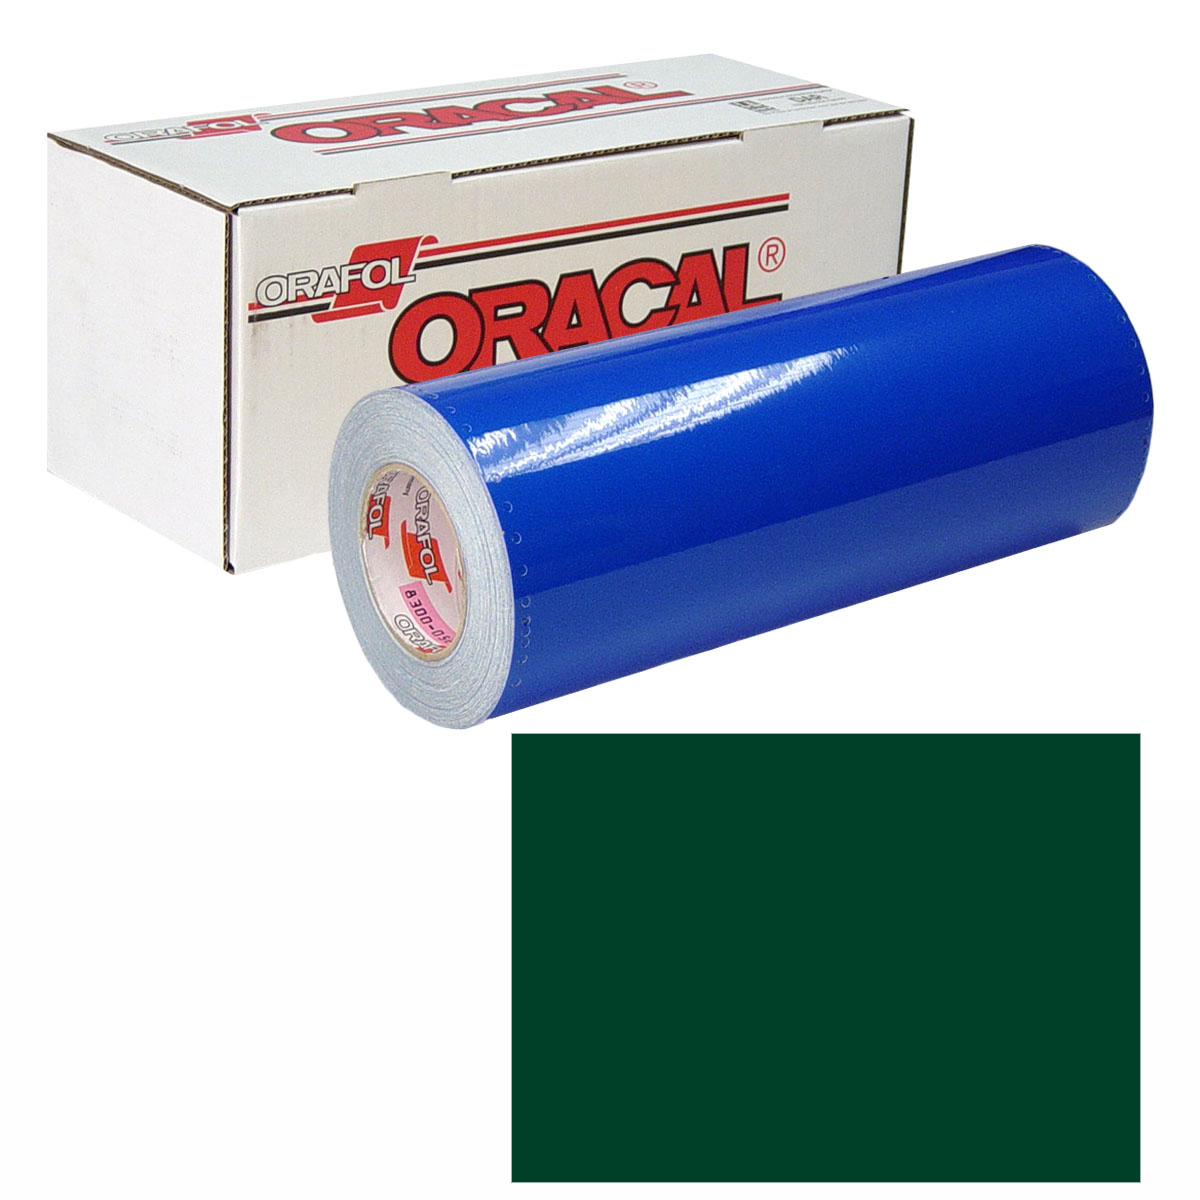 ORACAL 631 15In X 50Yd 060 Dark Green